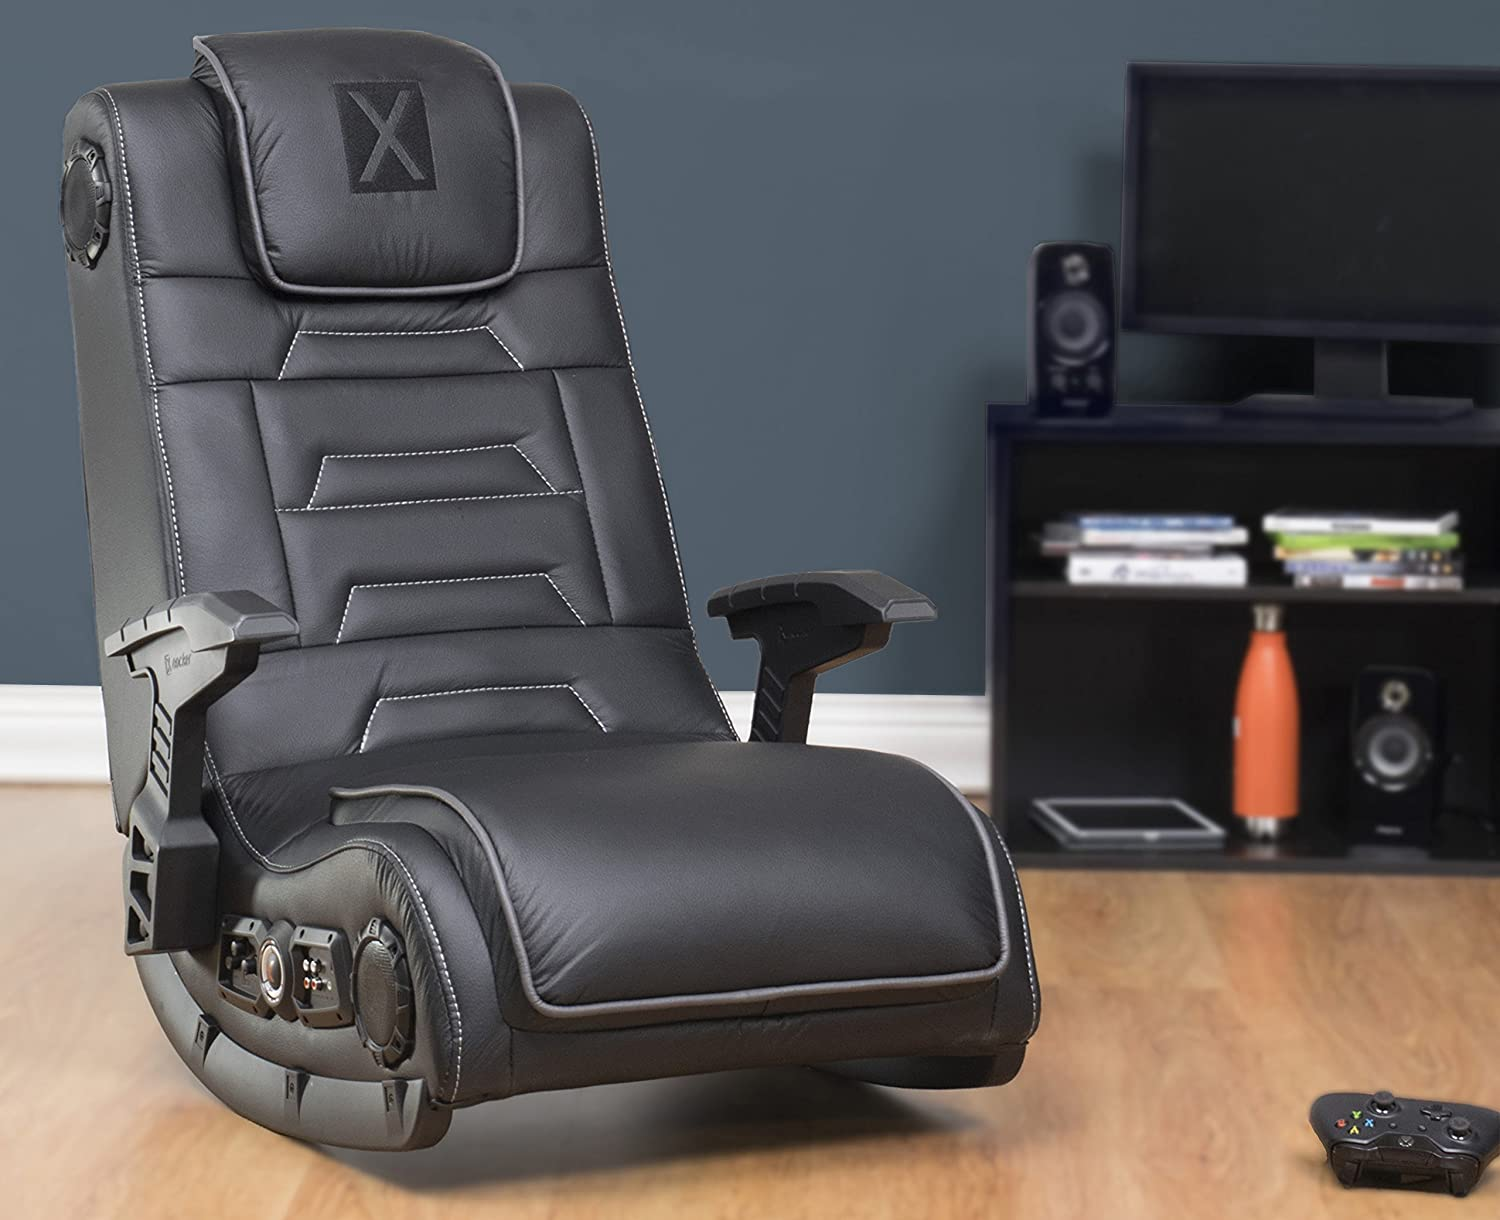 X Rocker Pro Series H3 Black Leather Vibrating Floor Video Gaming Chair with Headrest for Adult